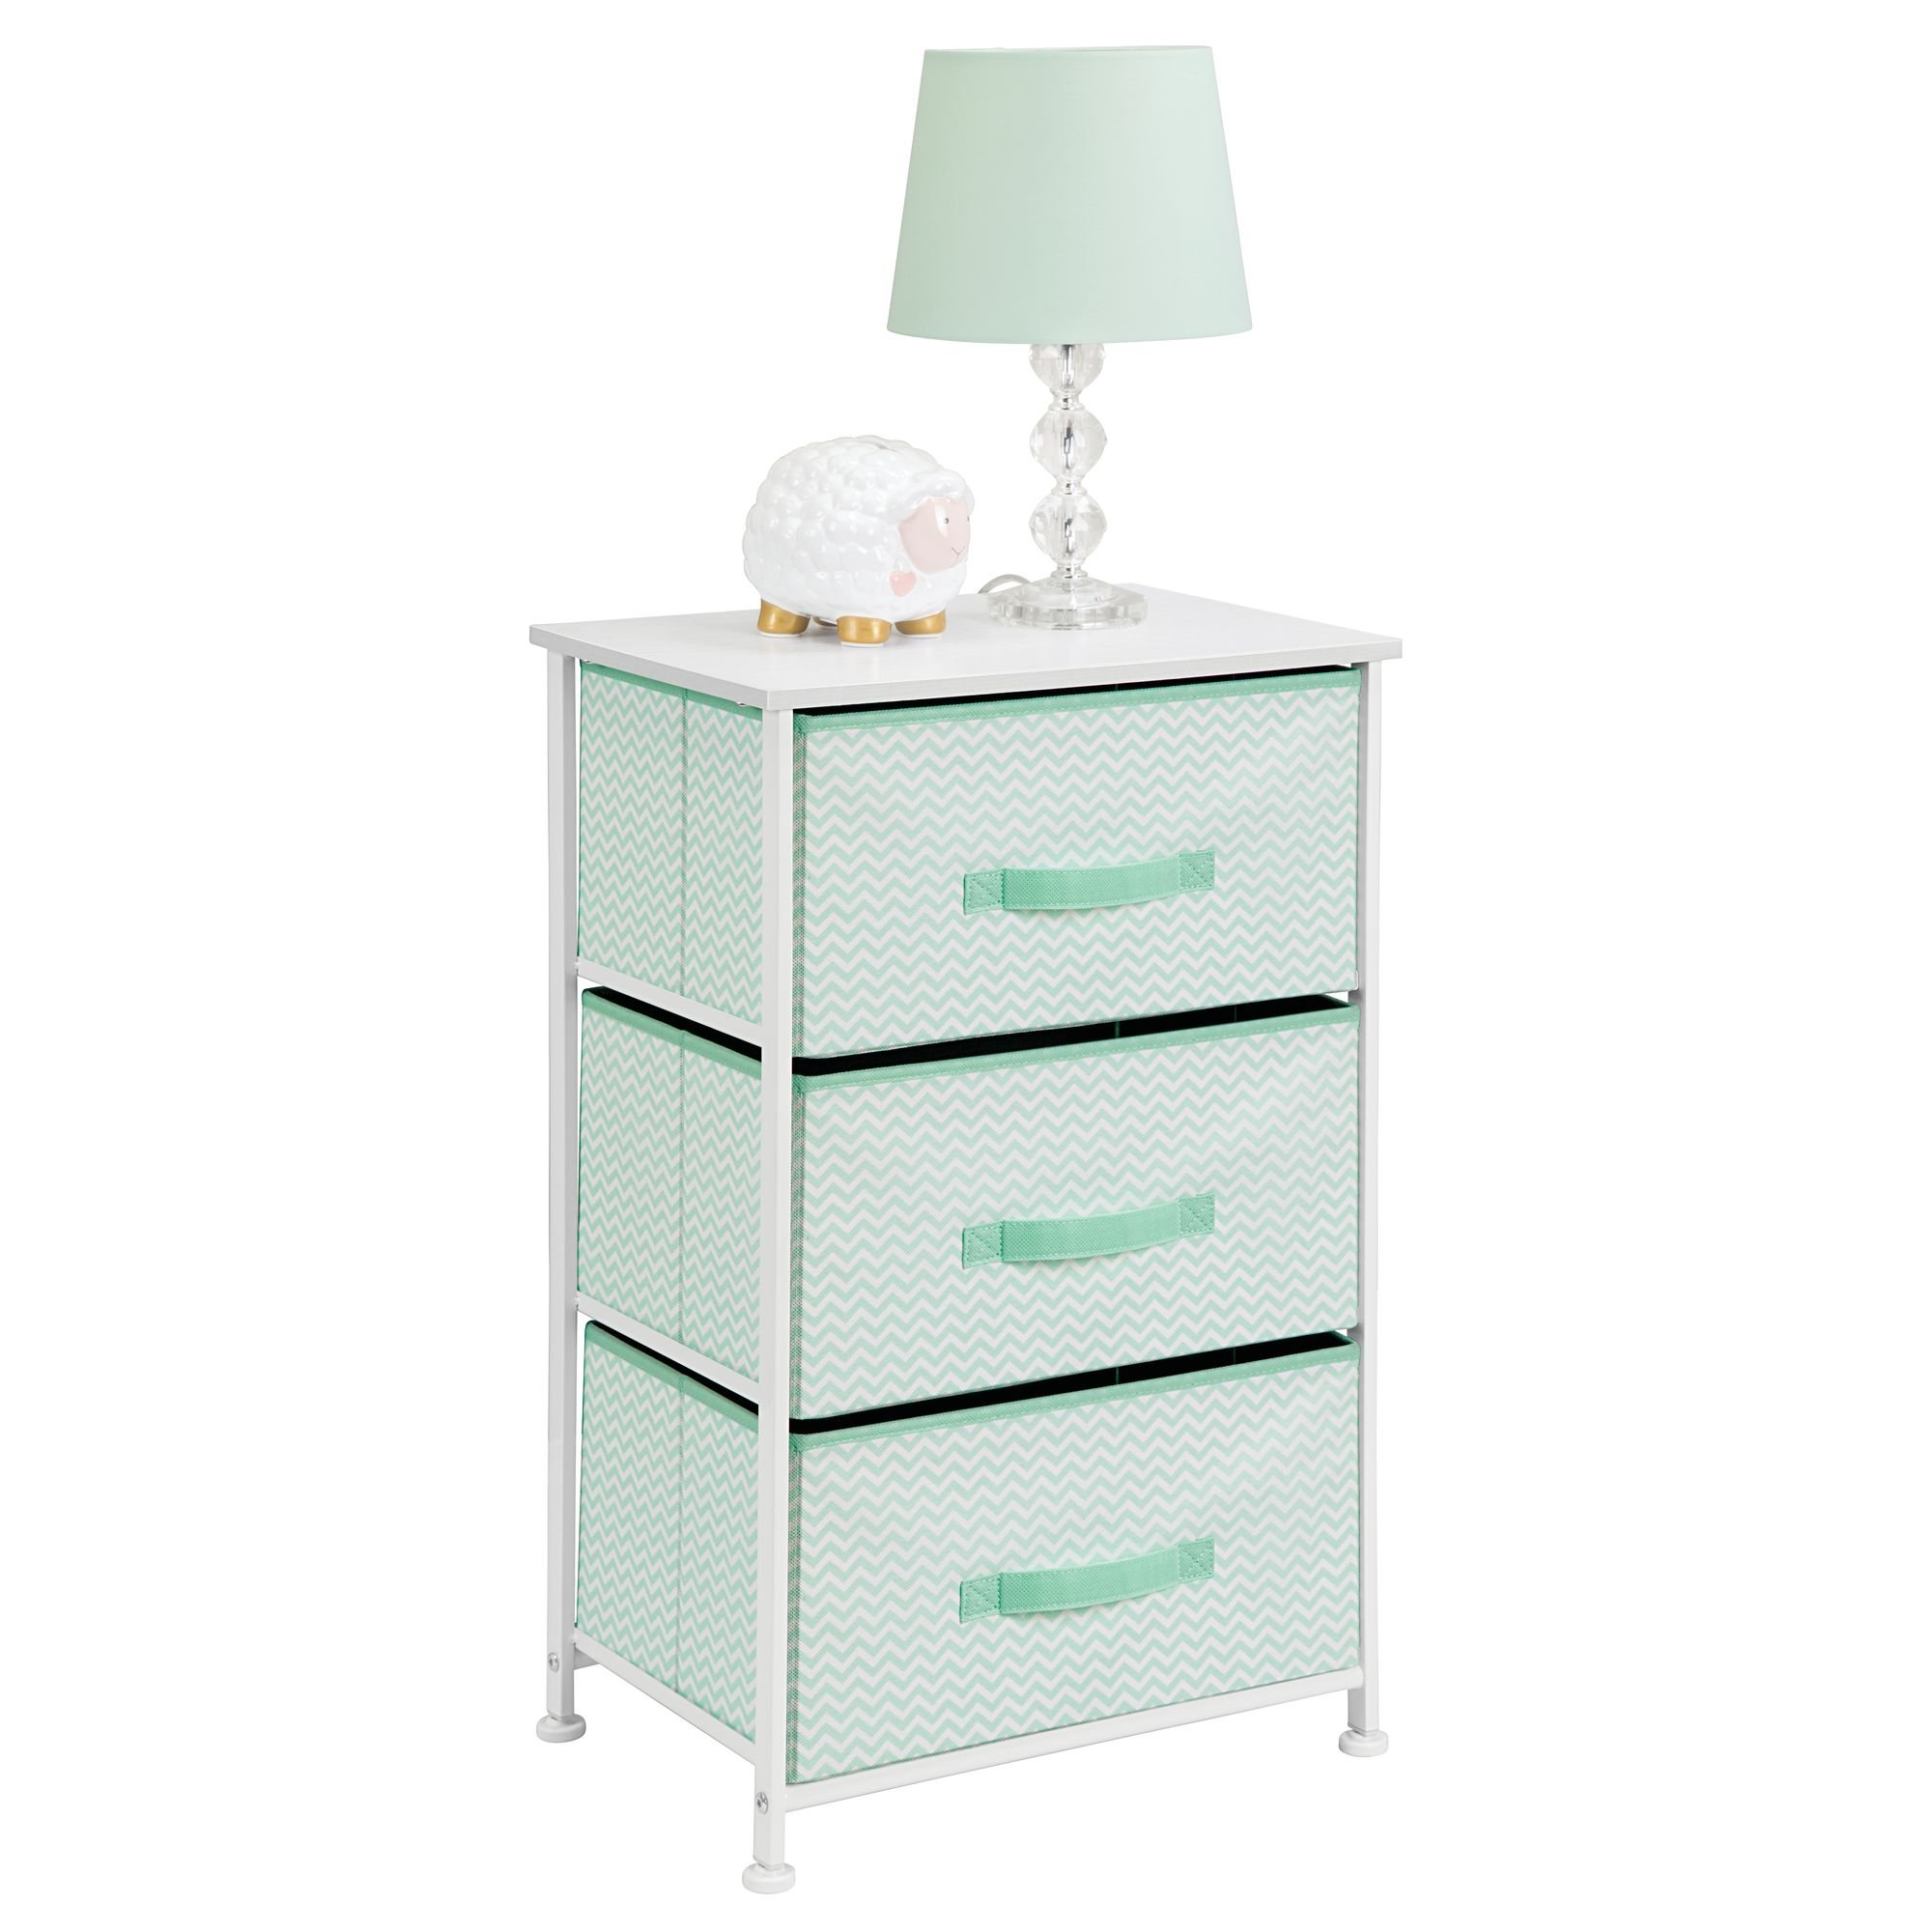 mDesign Vertical Dresser Storage Tower - Sturdy Steel Frame, Wood Top, Easy Pull Fabric Bins - Organizer Unit for Bedroom, Hallway, Entryway, Closets - Chevron Print - 3 Drawers, Mint/White